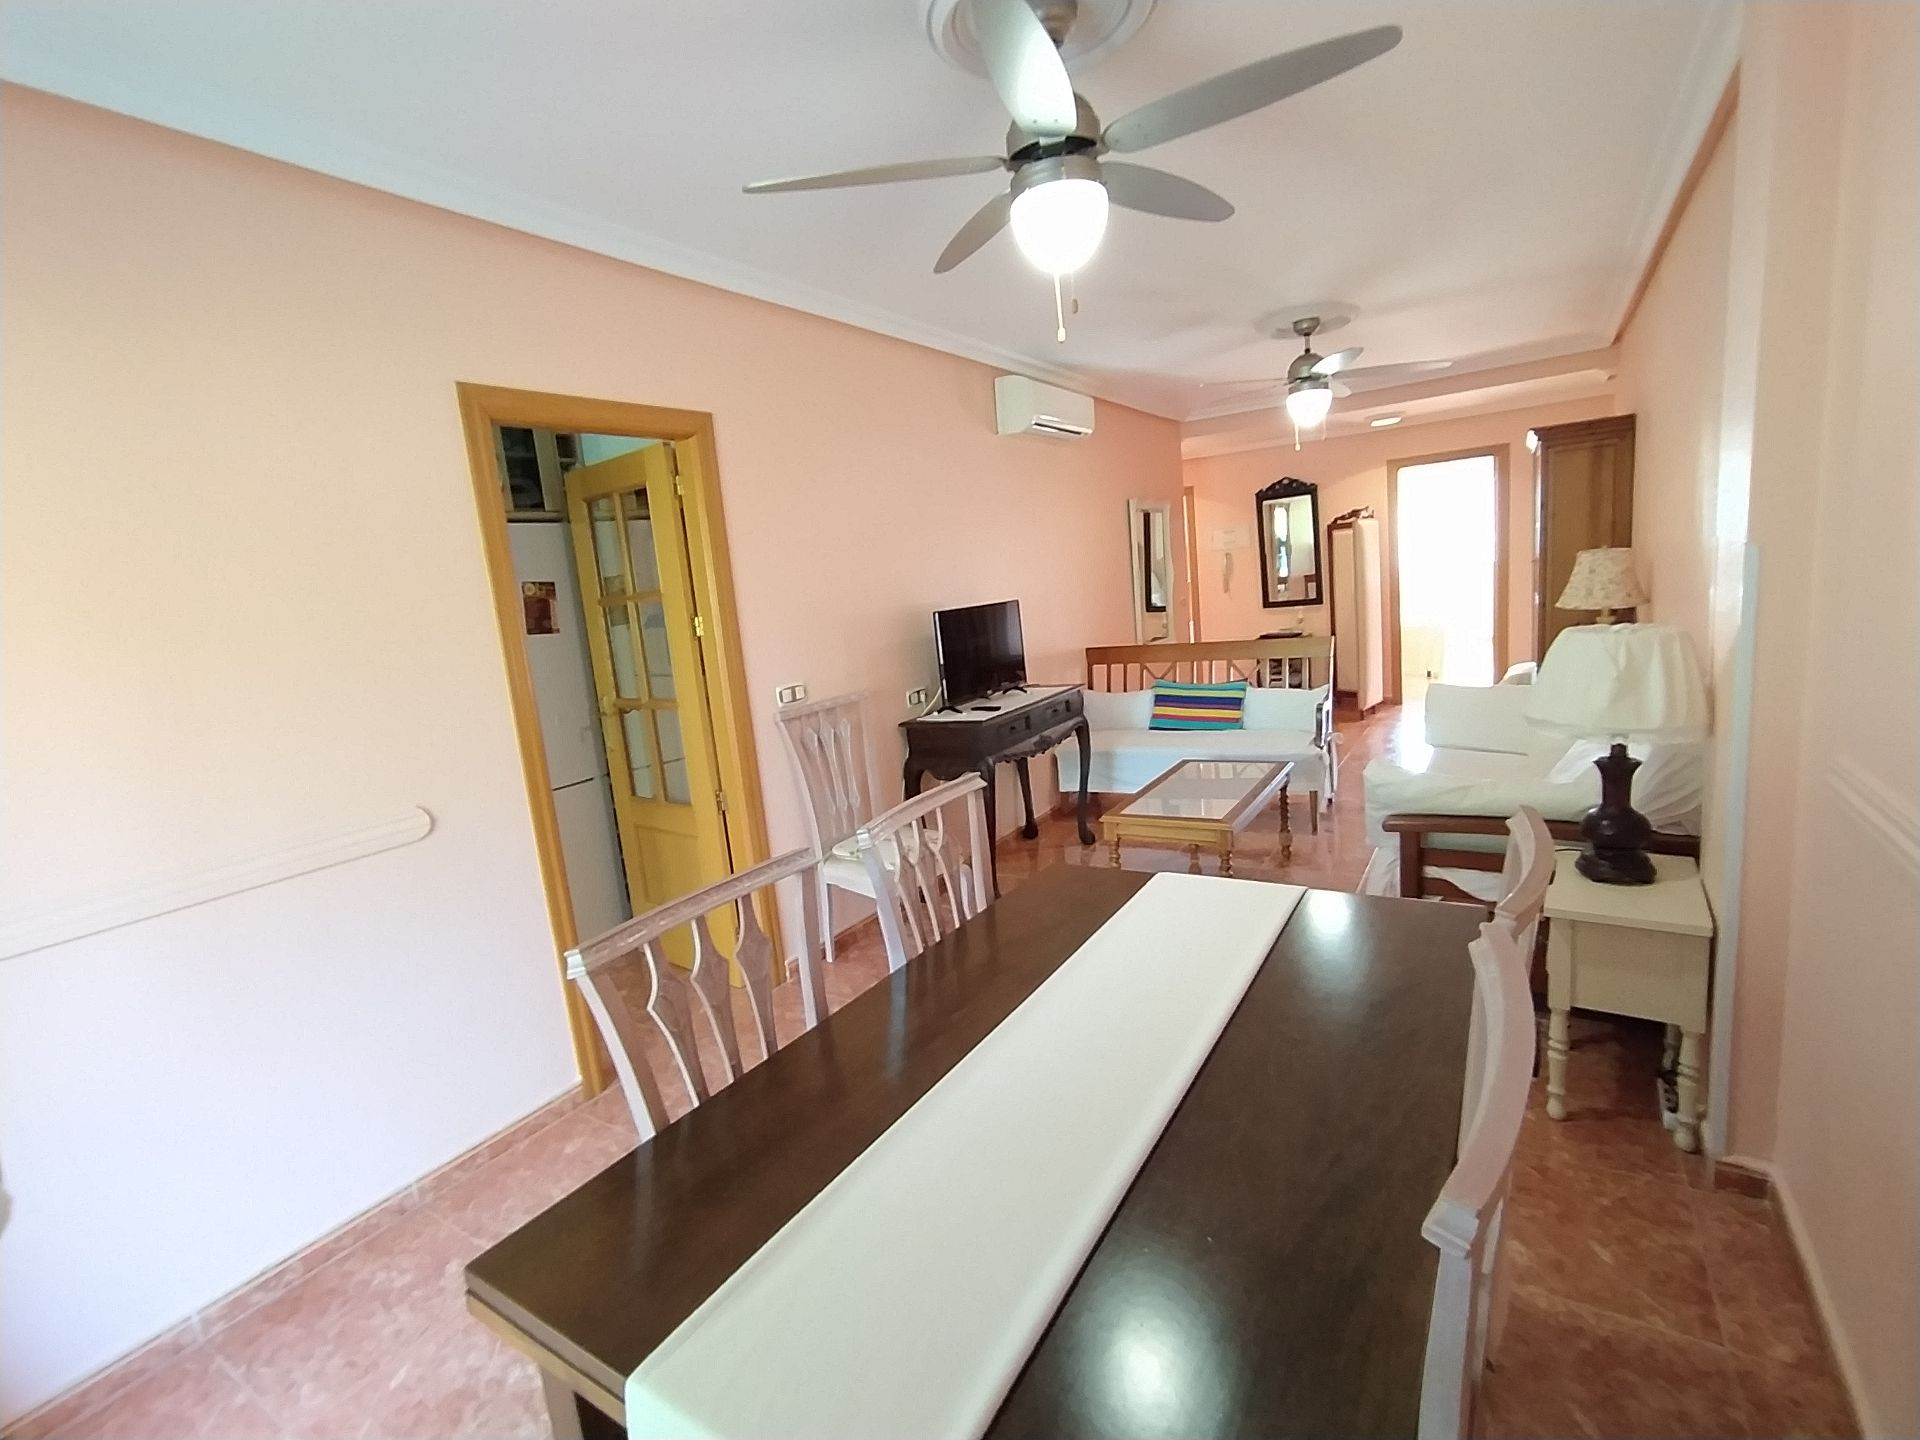 Flat (4 rooms) in SAN PEDRO DEL PINATAR